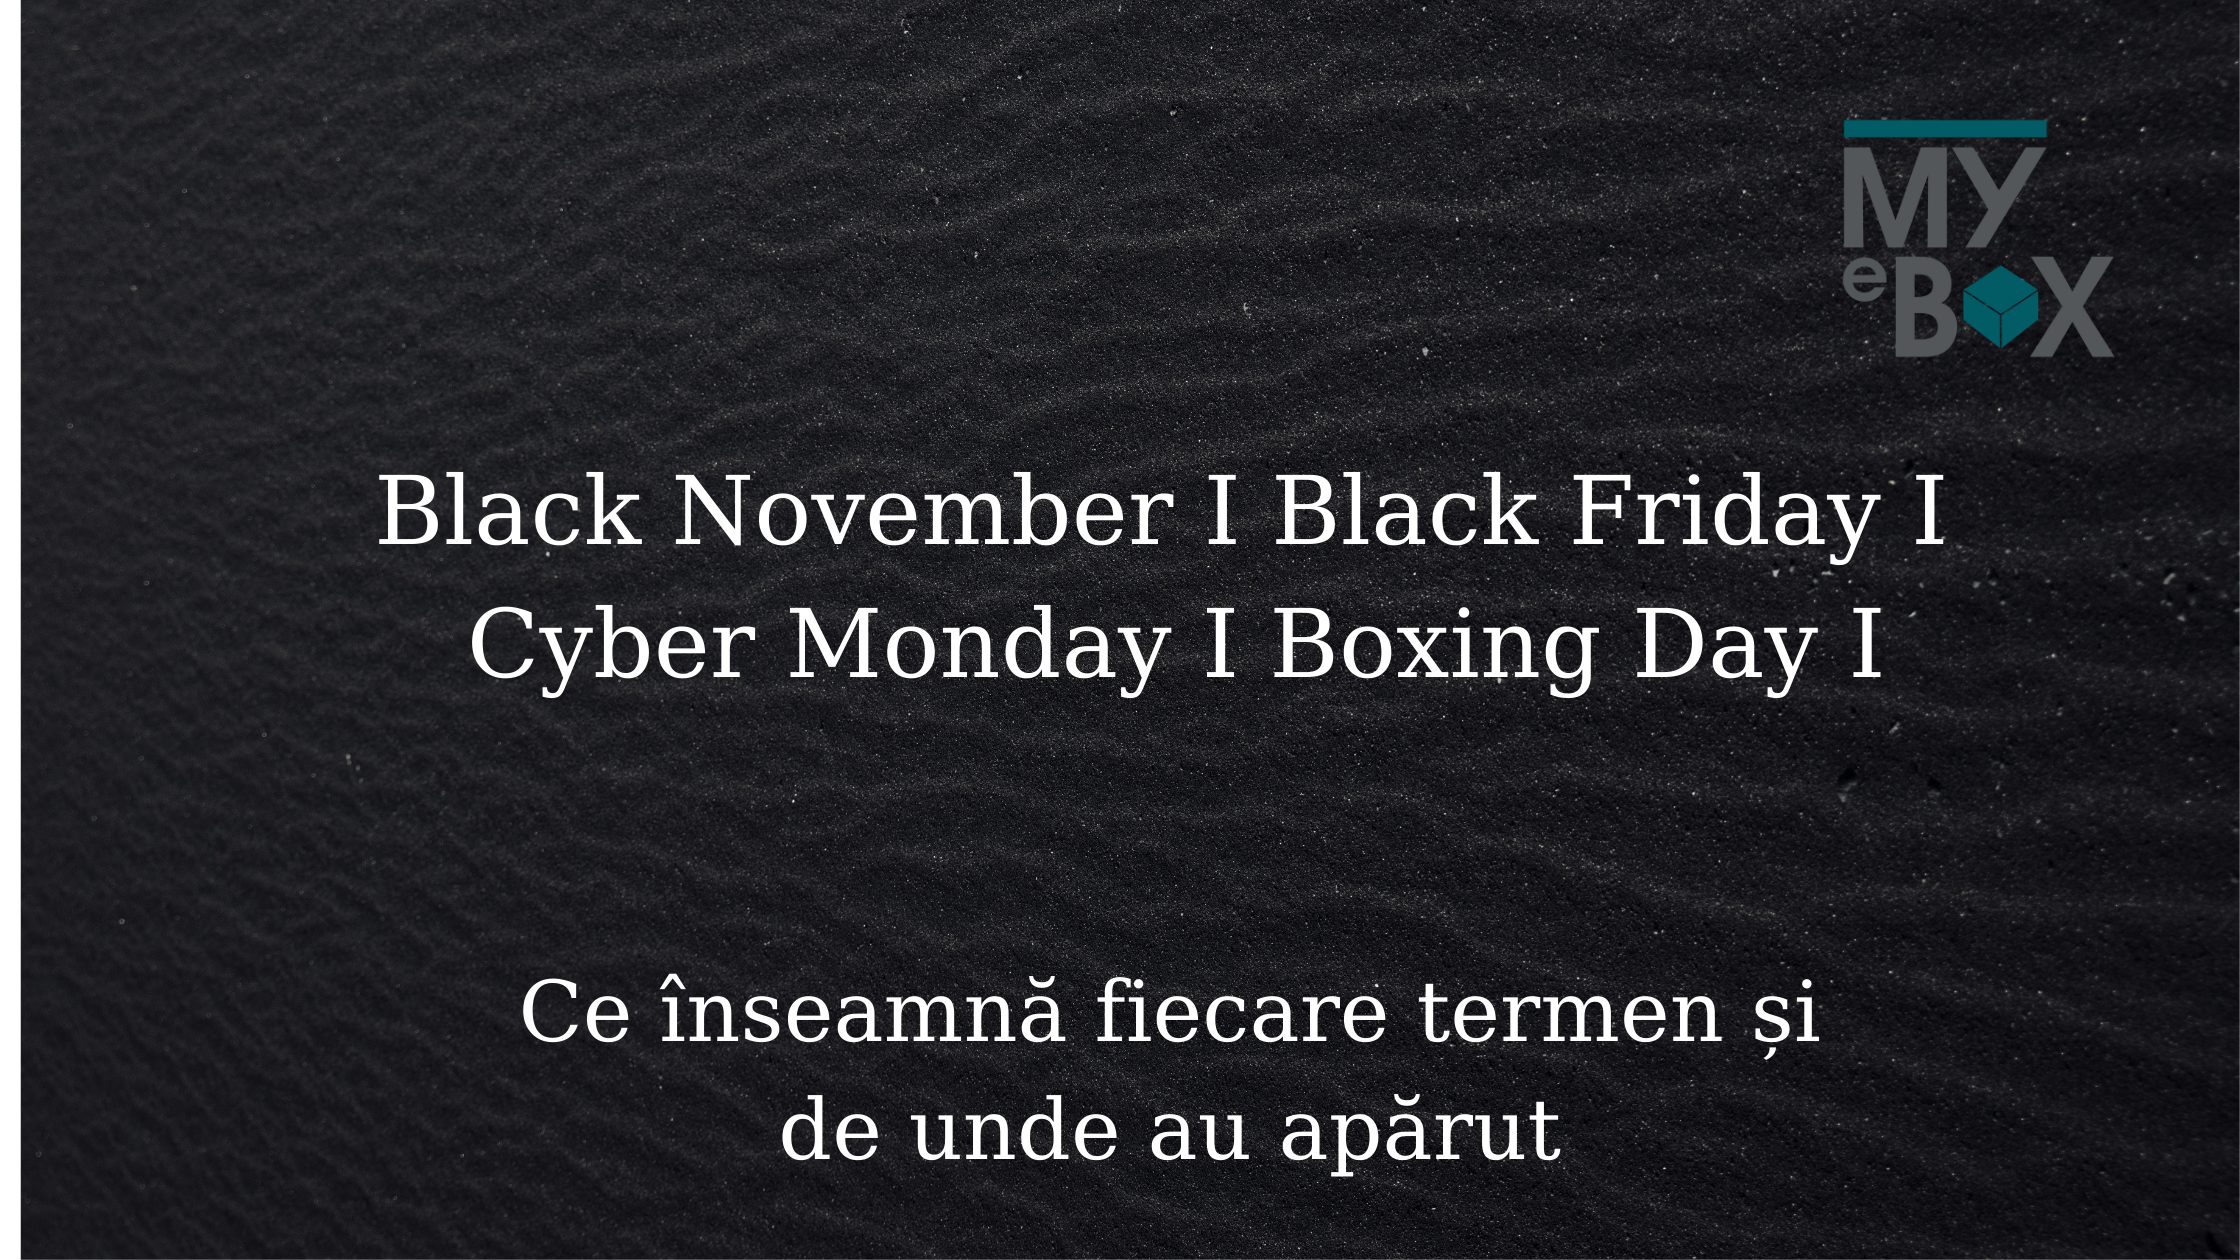 Black Friday I Black November I Cyber Monday I Boxing Day I Ecommerce I